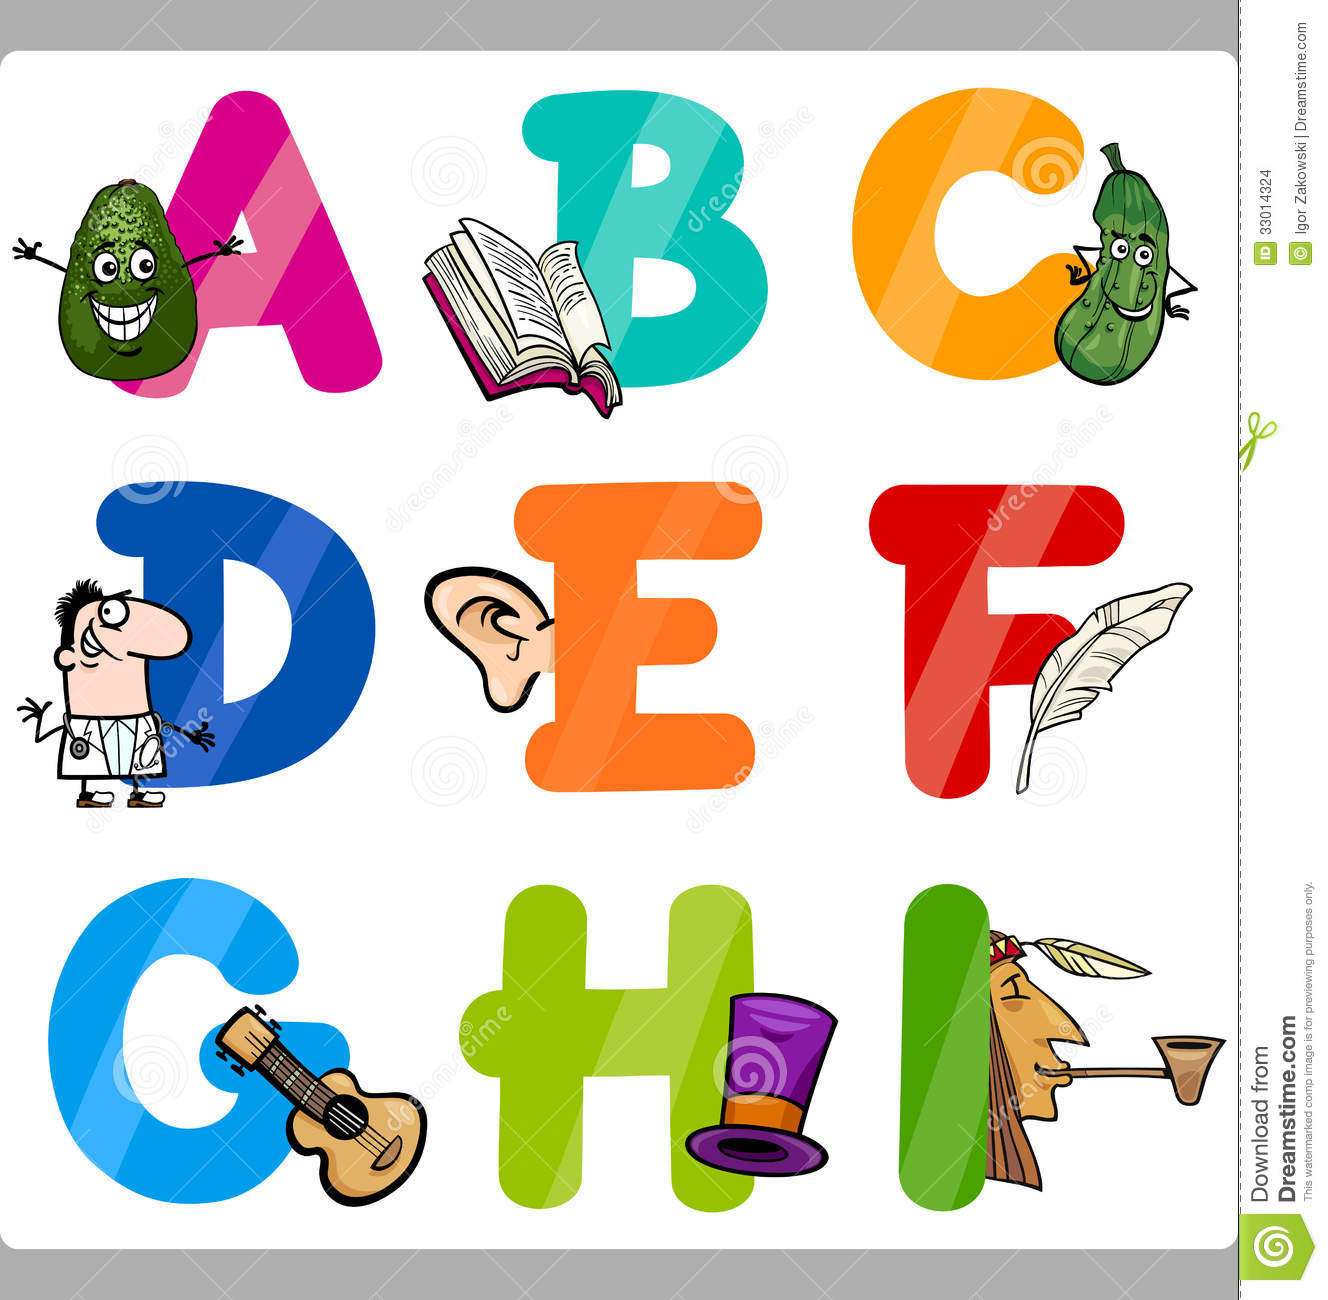 Cartoon Characters Letter Z : Education cartoon alphabet letters for kids vector